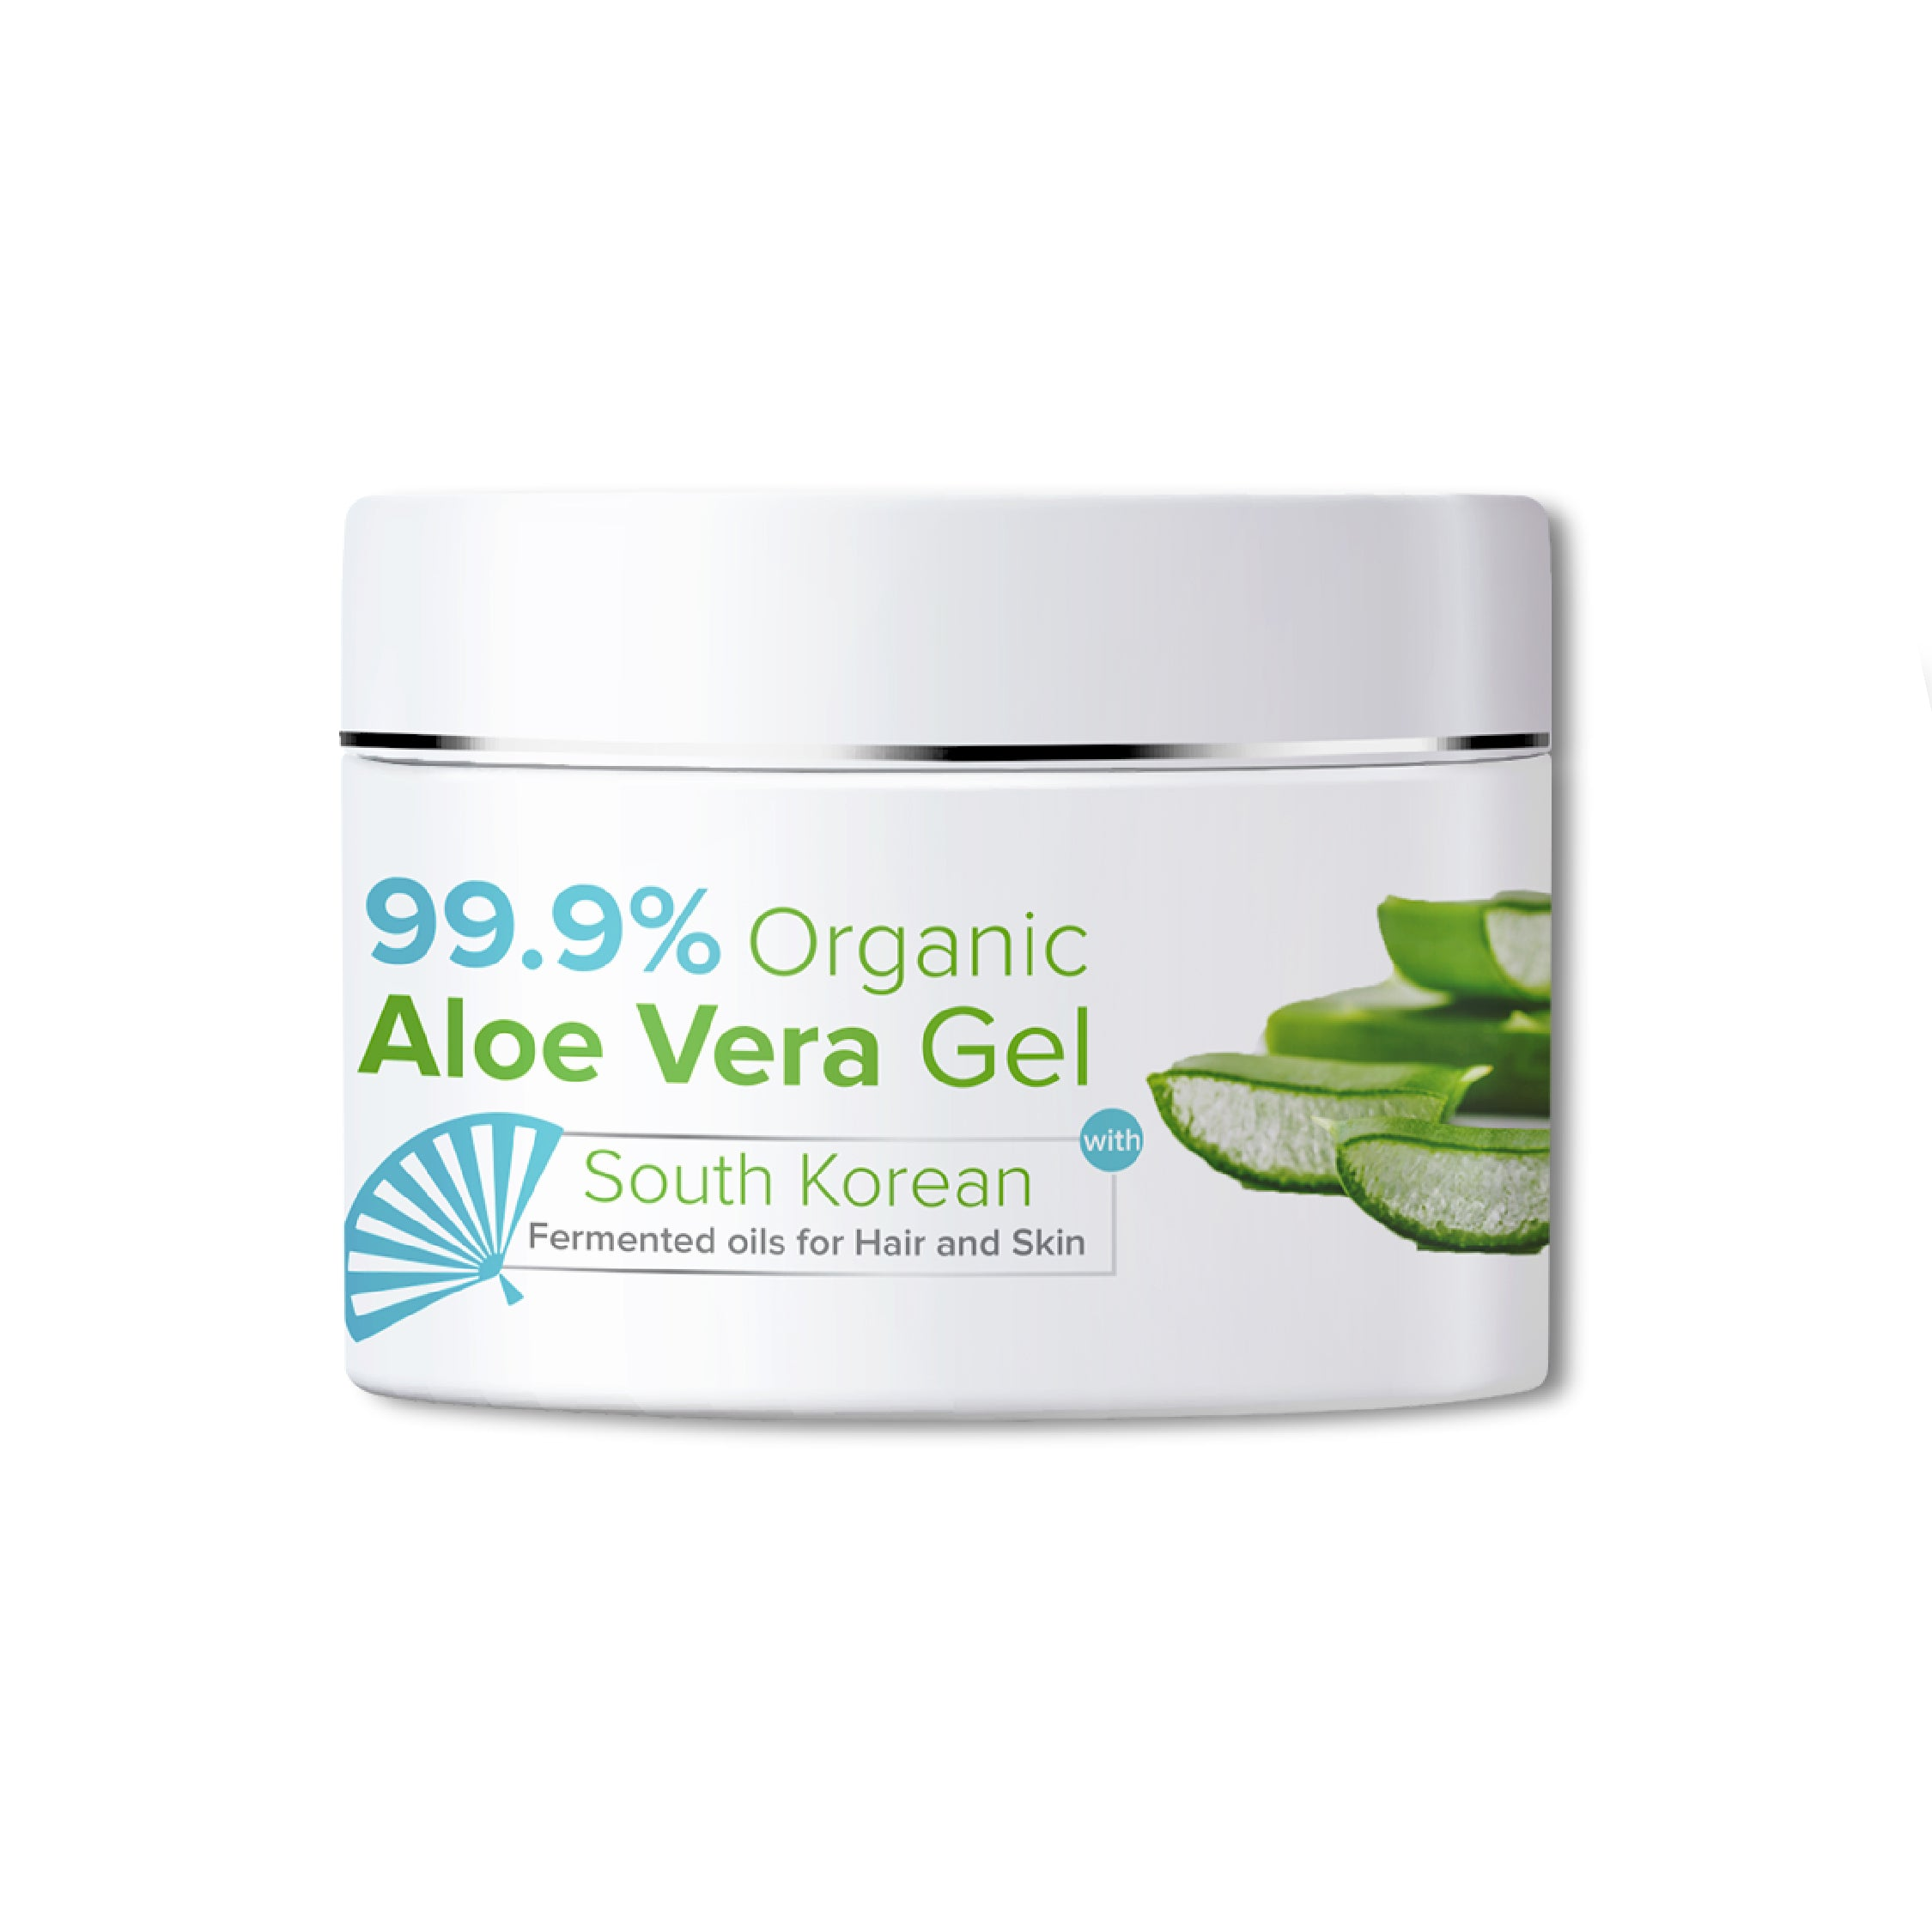 Aloevera gel south korean fermented oils